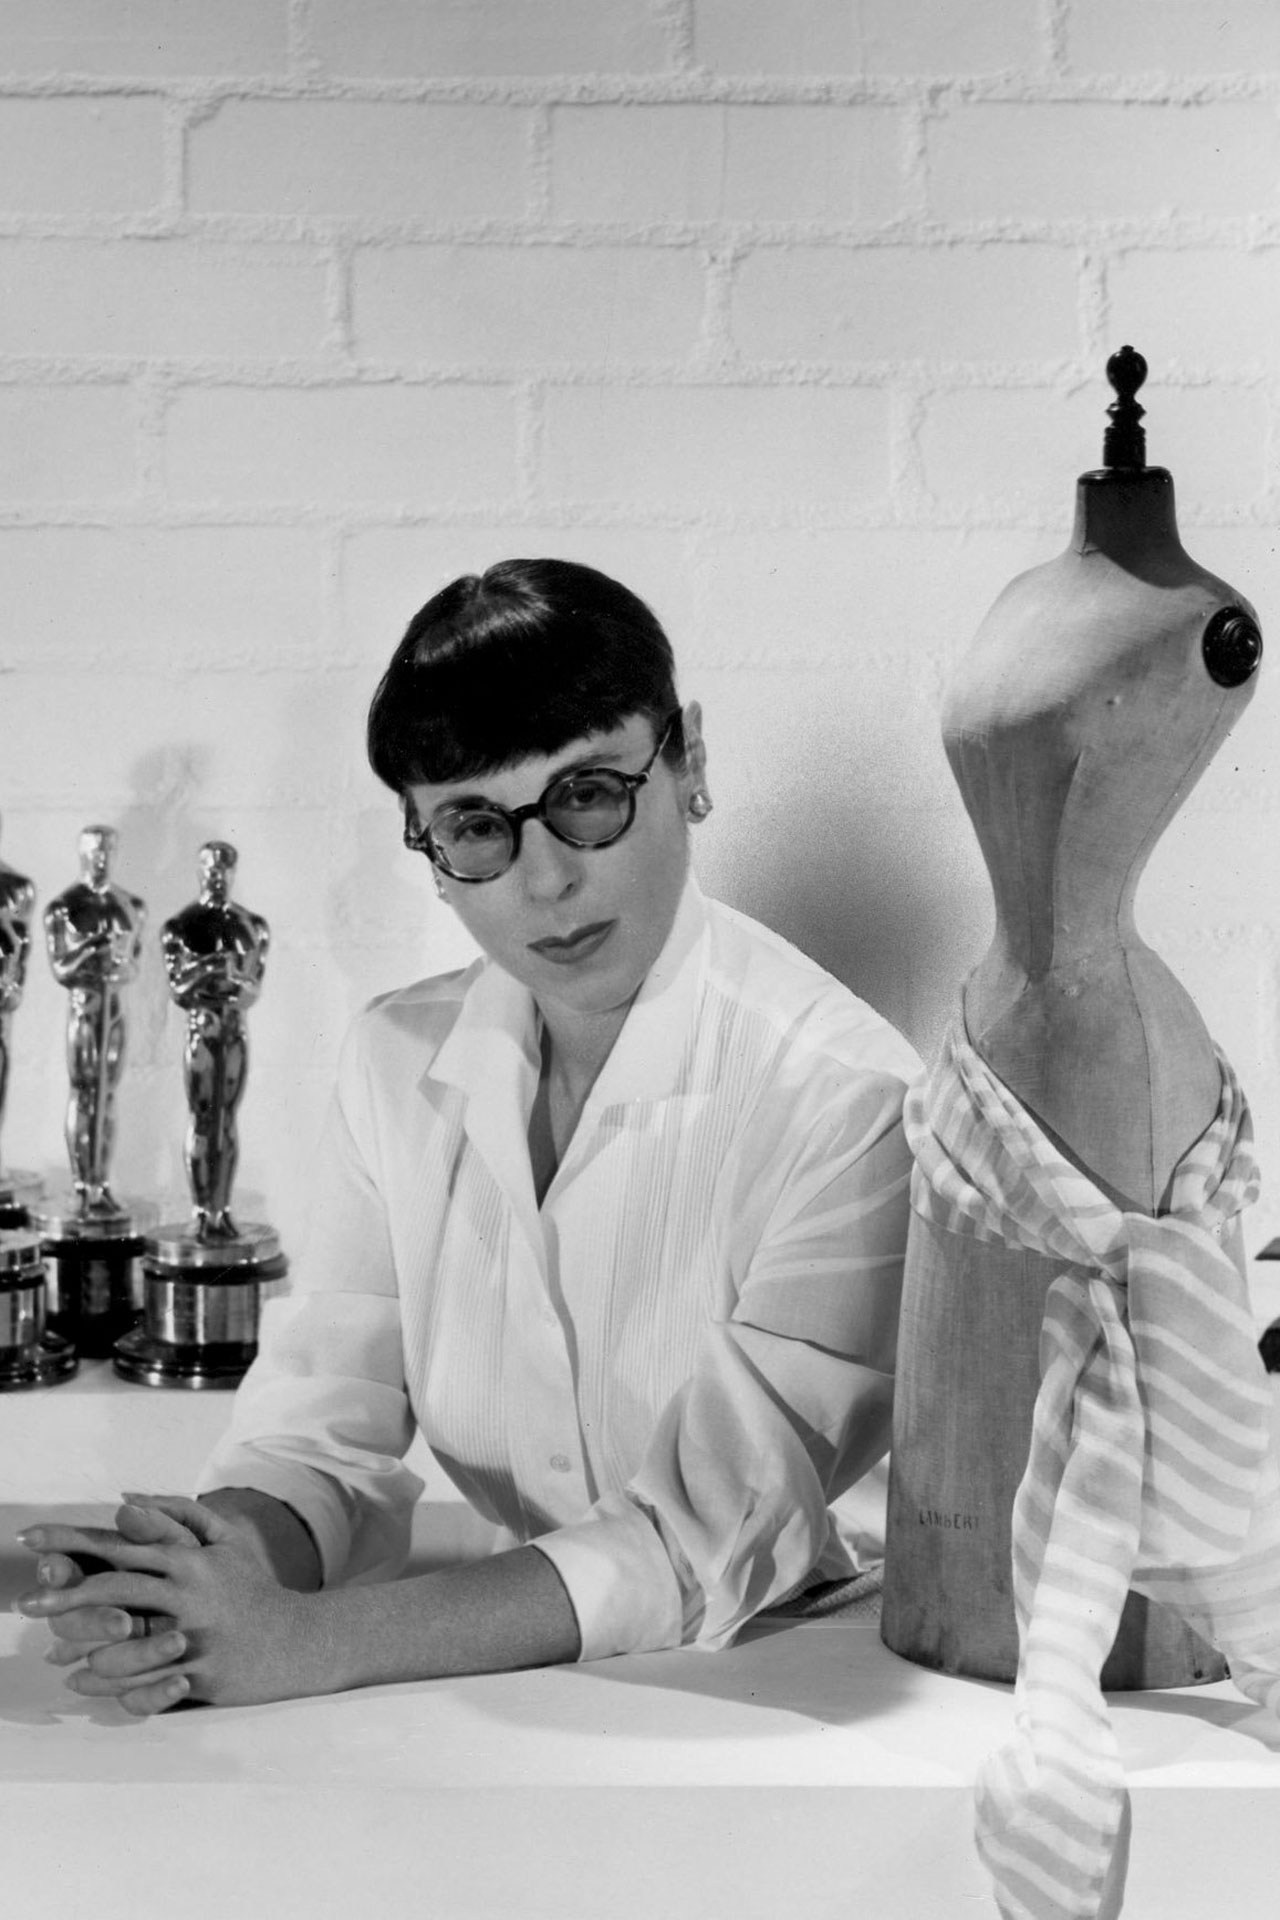 edith head costumesedith head sketch, edith head quotes, edith head oscar, edith head wikipedia, edith head costumes, edith head imdb, edith head biography, edith head the dress doctor, edith head audrey hepburn, edith head, edith head designs, edith head dresses, edith head book, edith head sketches, edith head wiki, edith head dresses for sale, edith head how to dress for success, edith head costume designer, edith head documentary, edith head bio